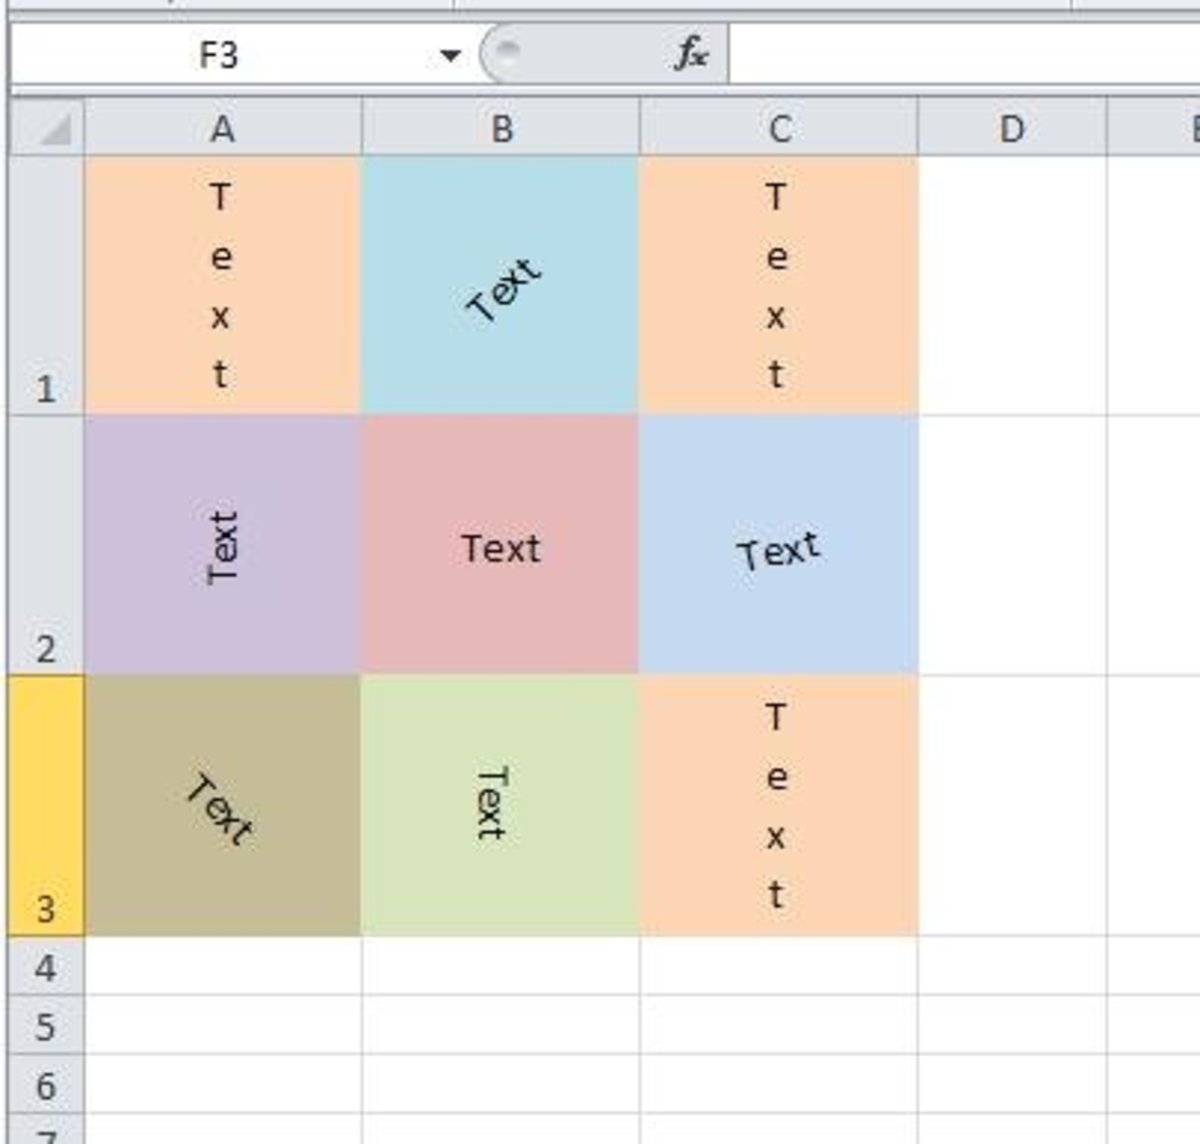 Tutorial – MS Excel – How to Write Text Vertically or at an Angle in an Excel Sheet